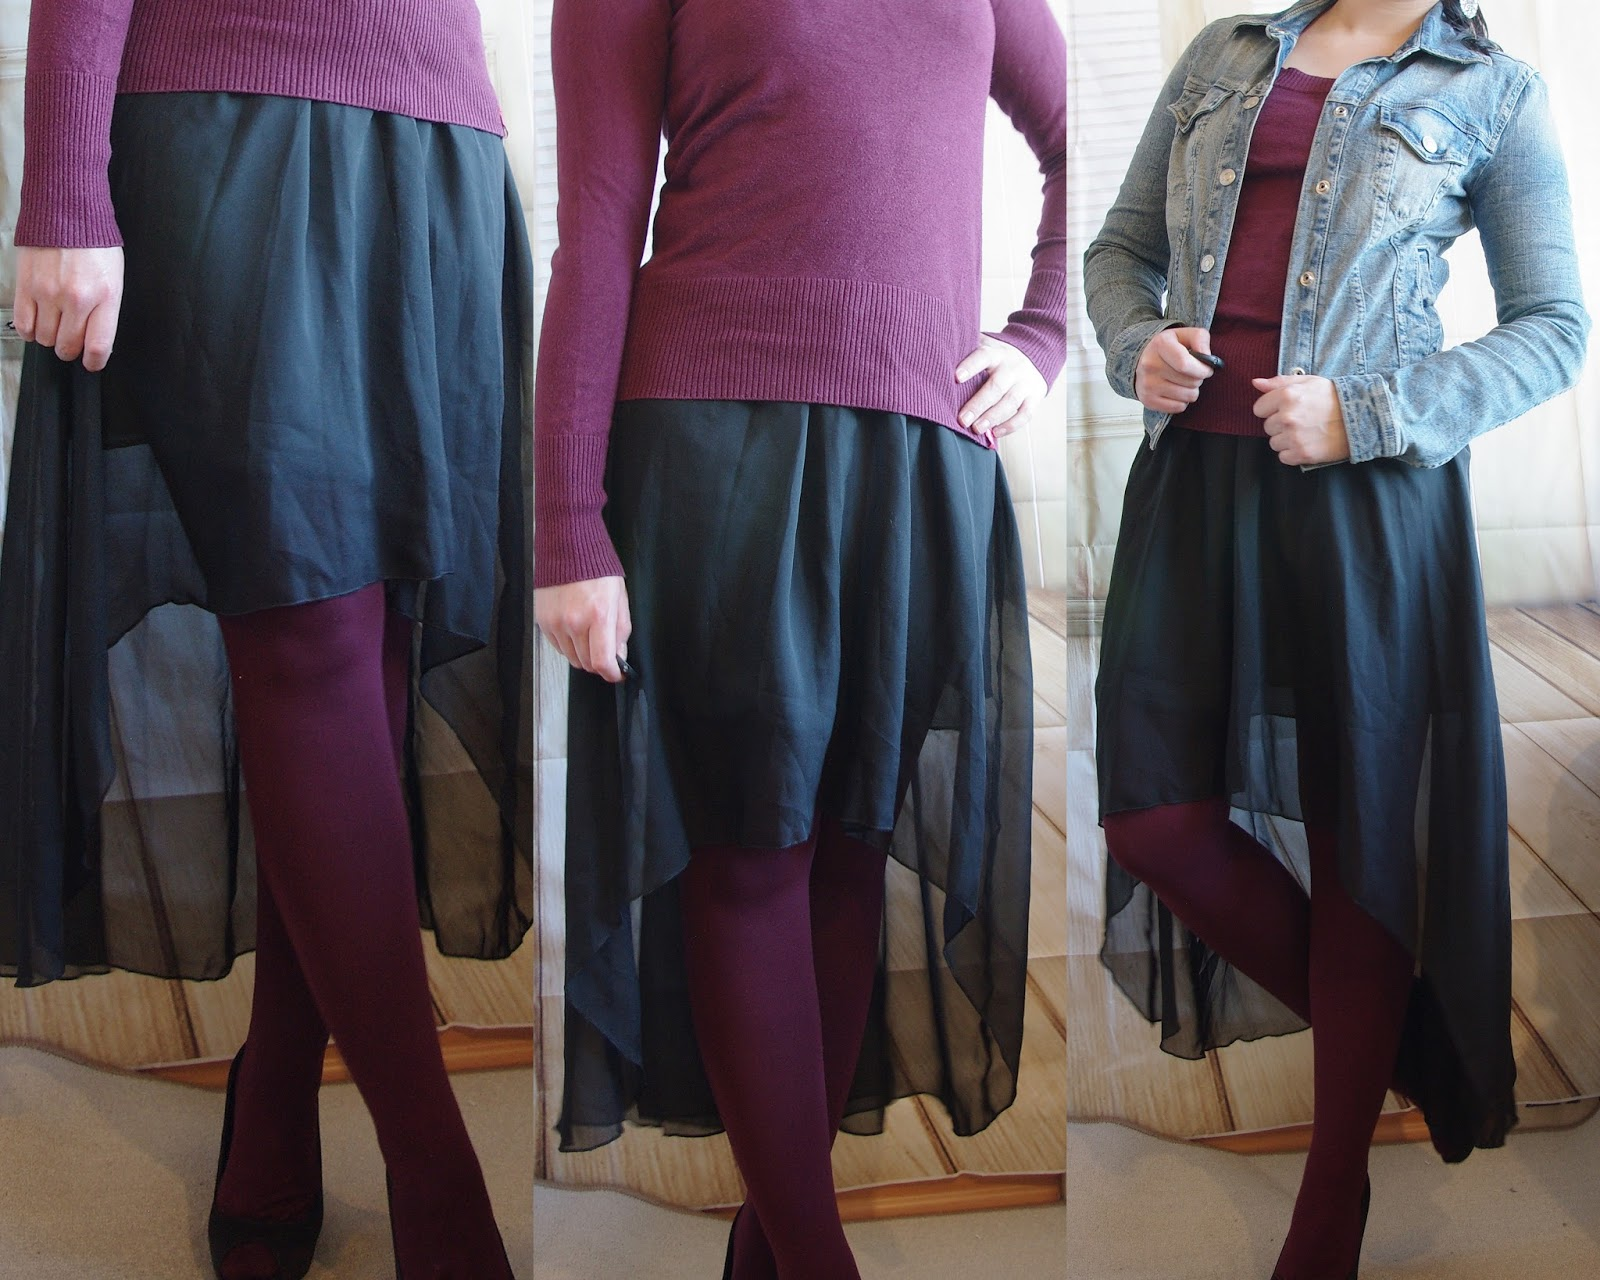 Outfit Vokuhila Skirt, Sweater, colored tights and jeans jacket